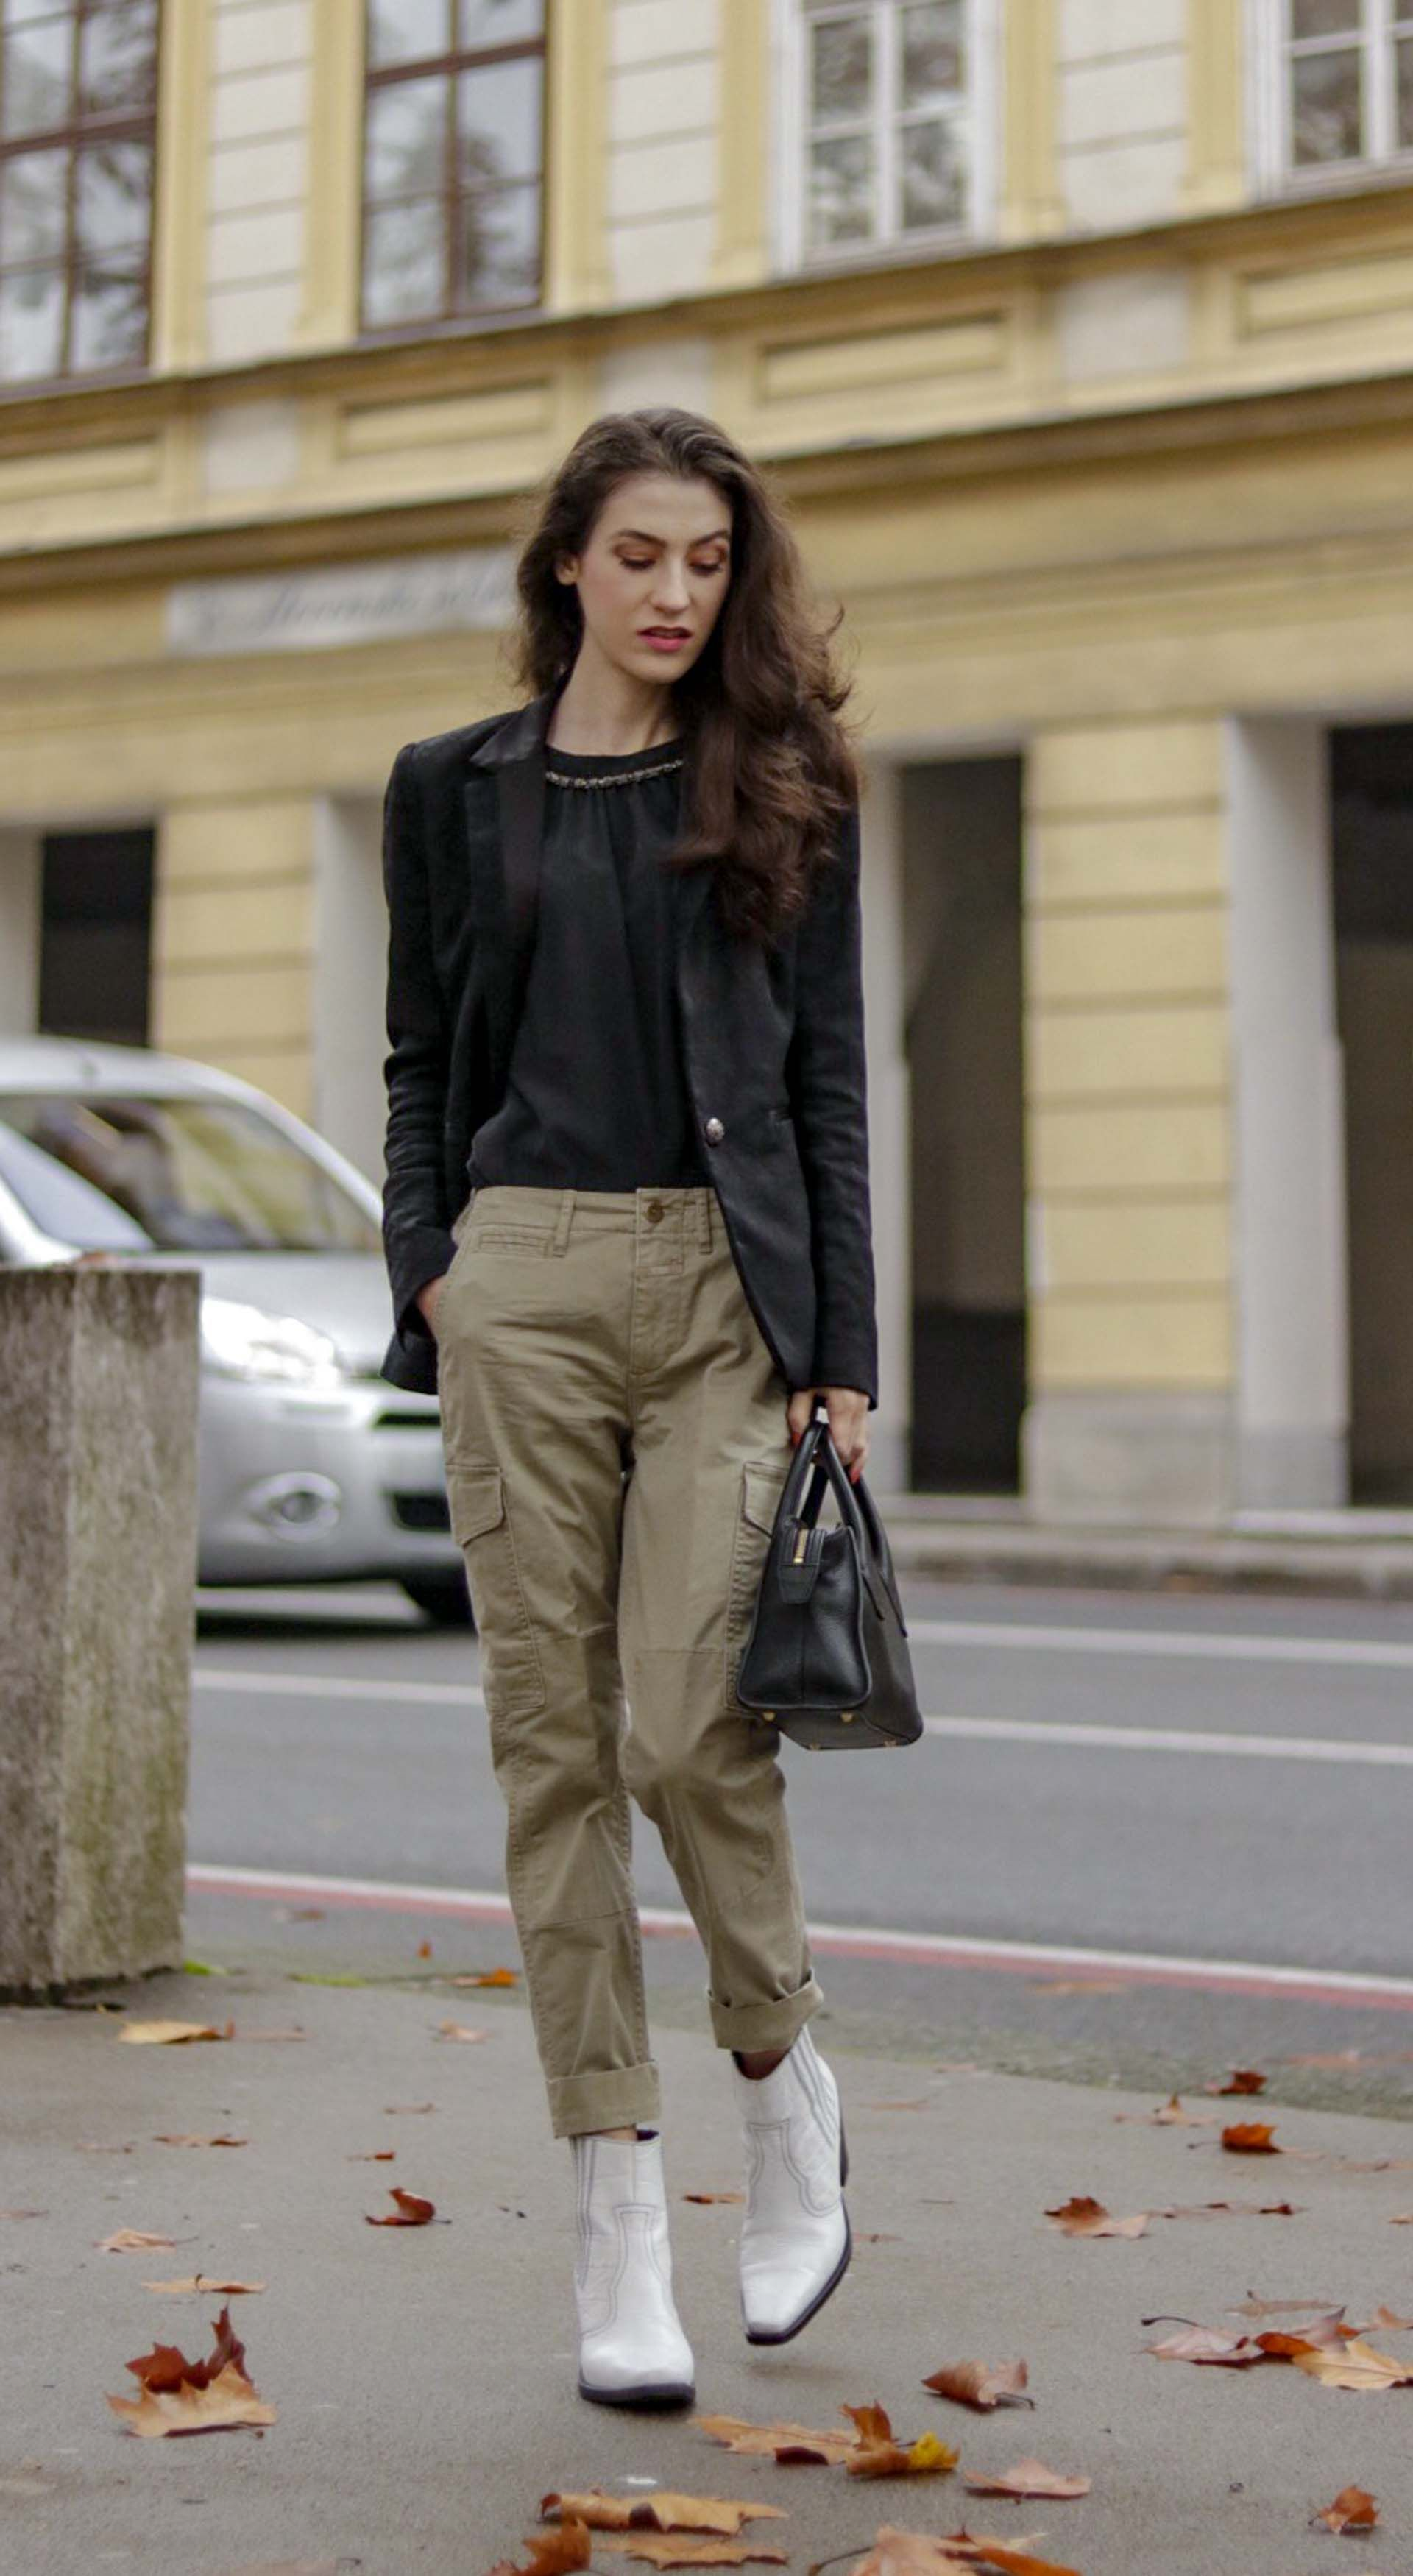 Fashion Blogger Veronika Lipar of Brunette from Wall Street showing how Parisians wear cargo pants #fashion #blog… | Fashion, Summer city fashion, Street style chic